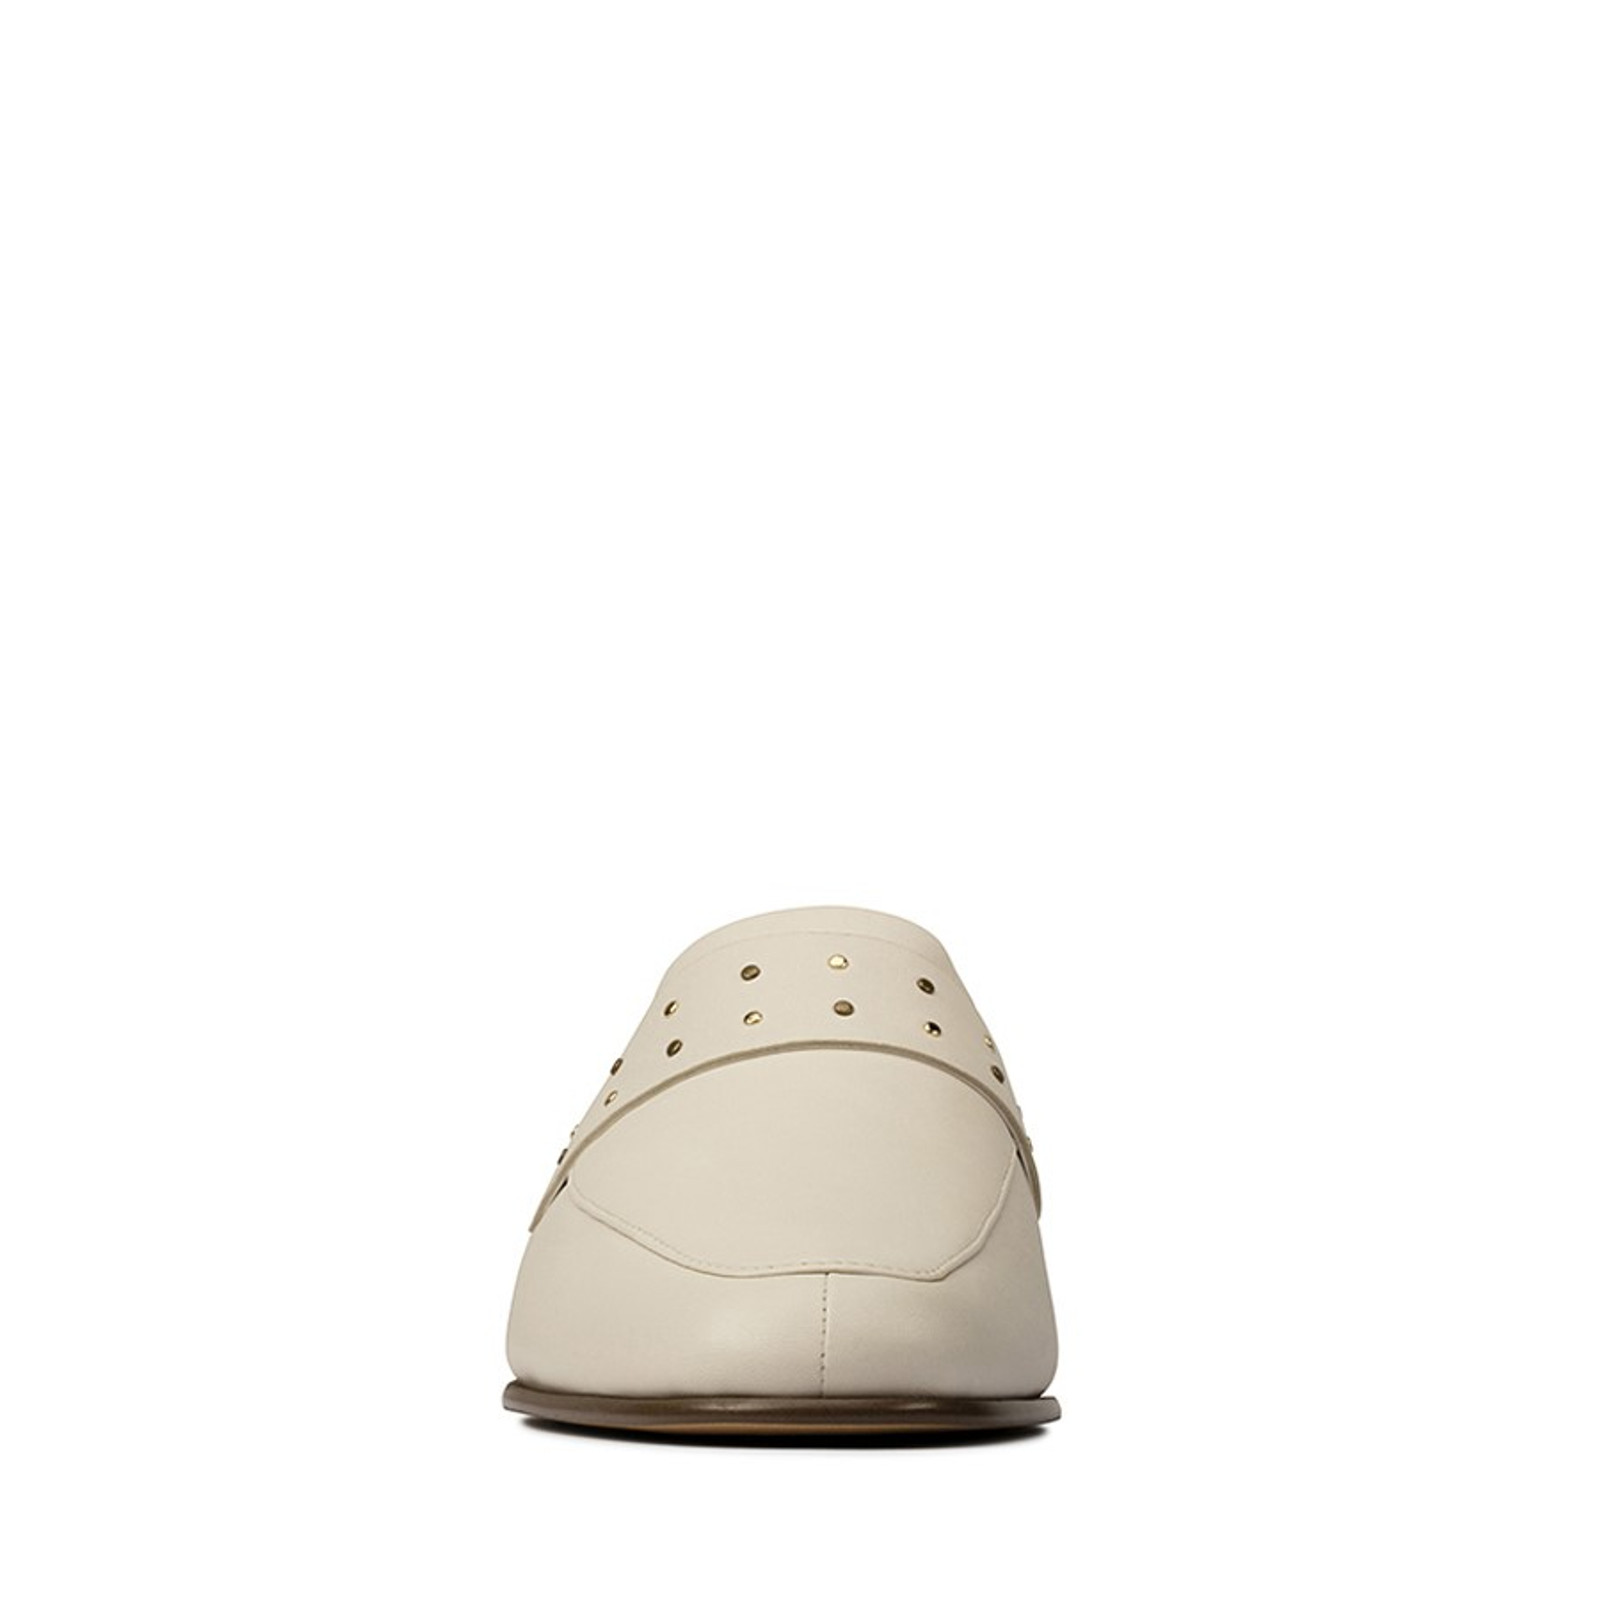 Clarks Womens PURE MULE White Leather